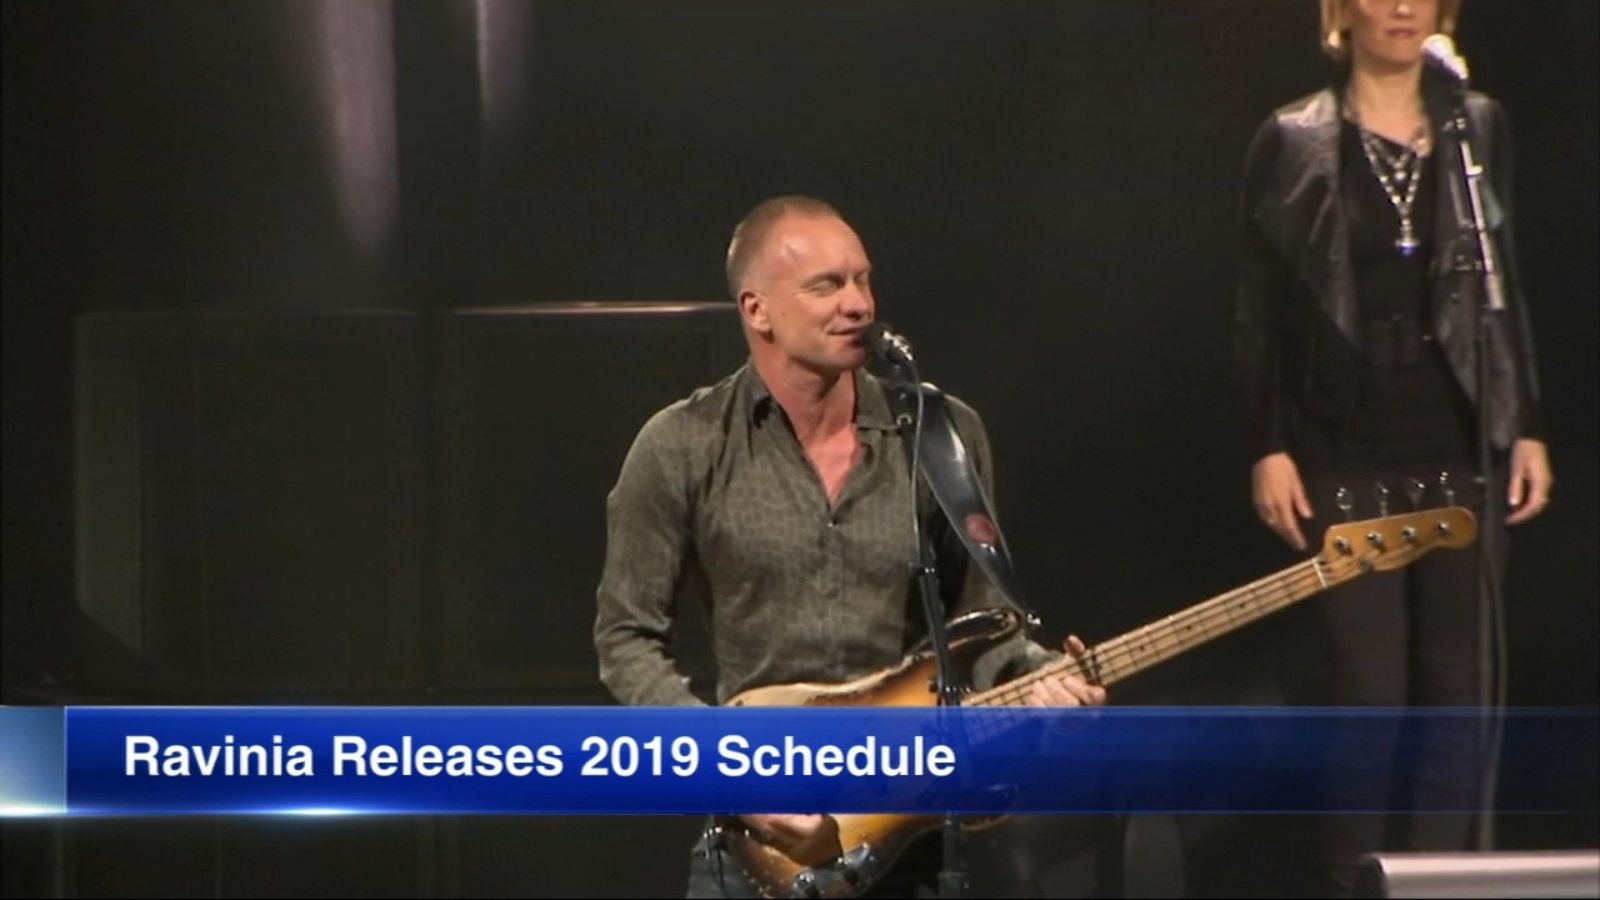 Ravinia tickets on sale Wednesday for 2019 season